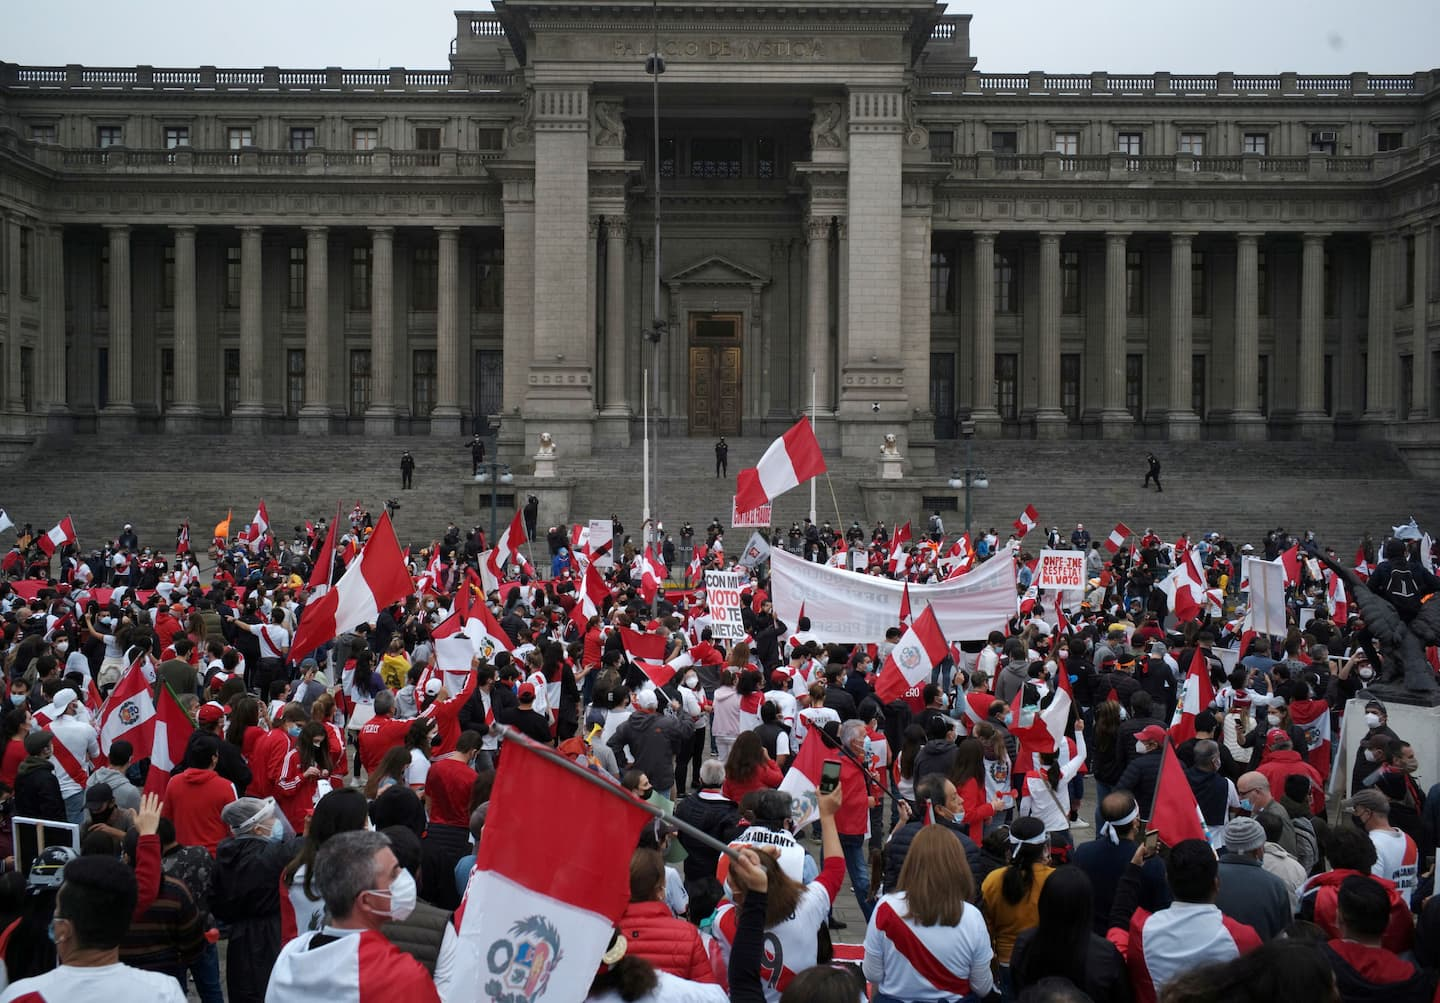 Peru's Keiko Fujimori, with election fraud claims, takes a page from the Trump playbook. She's not alone.